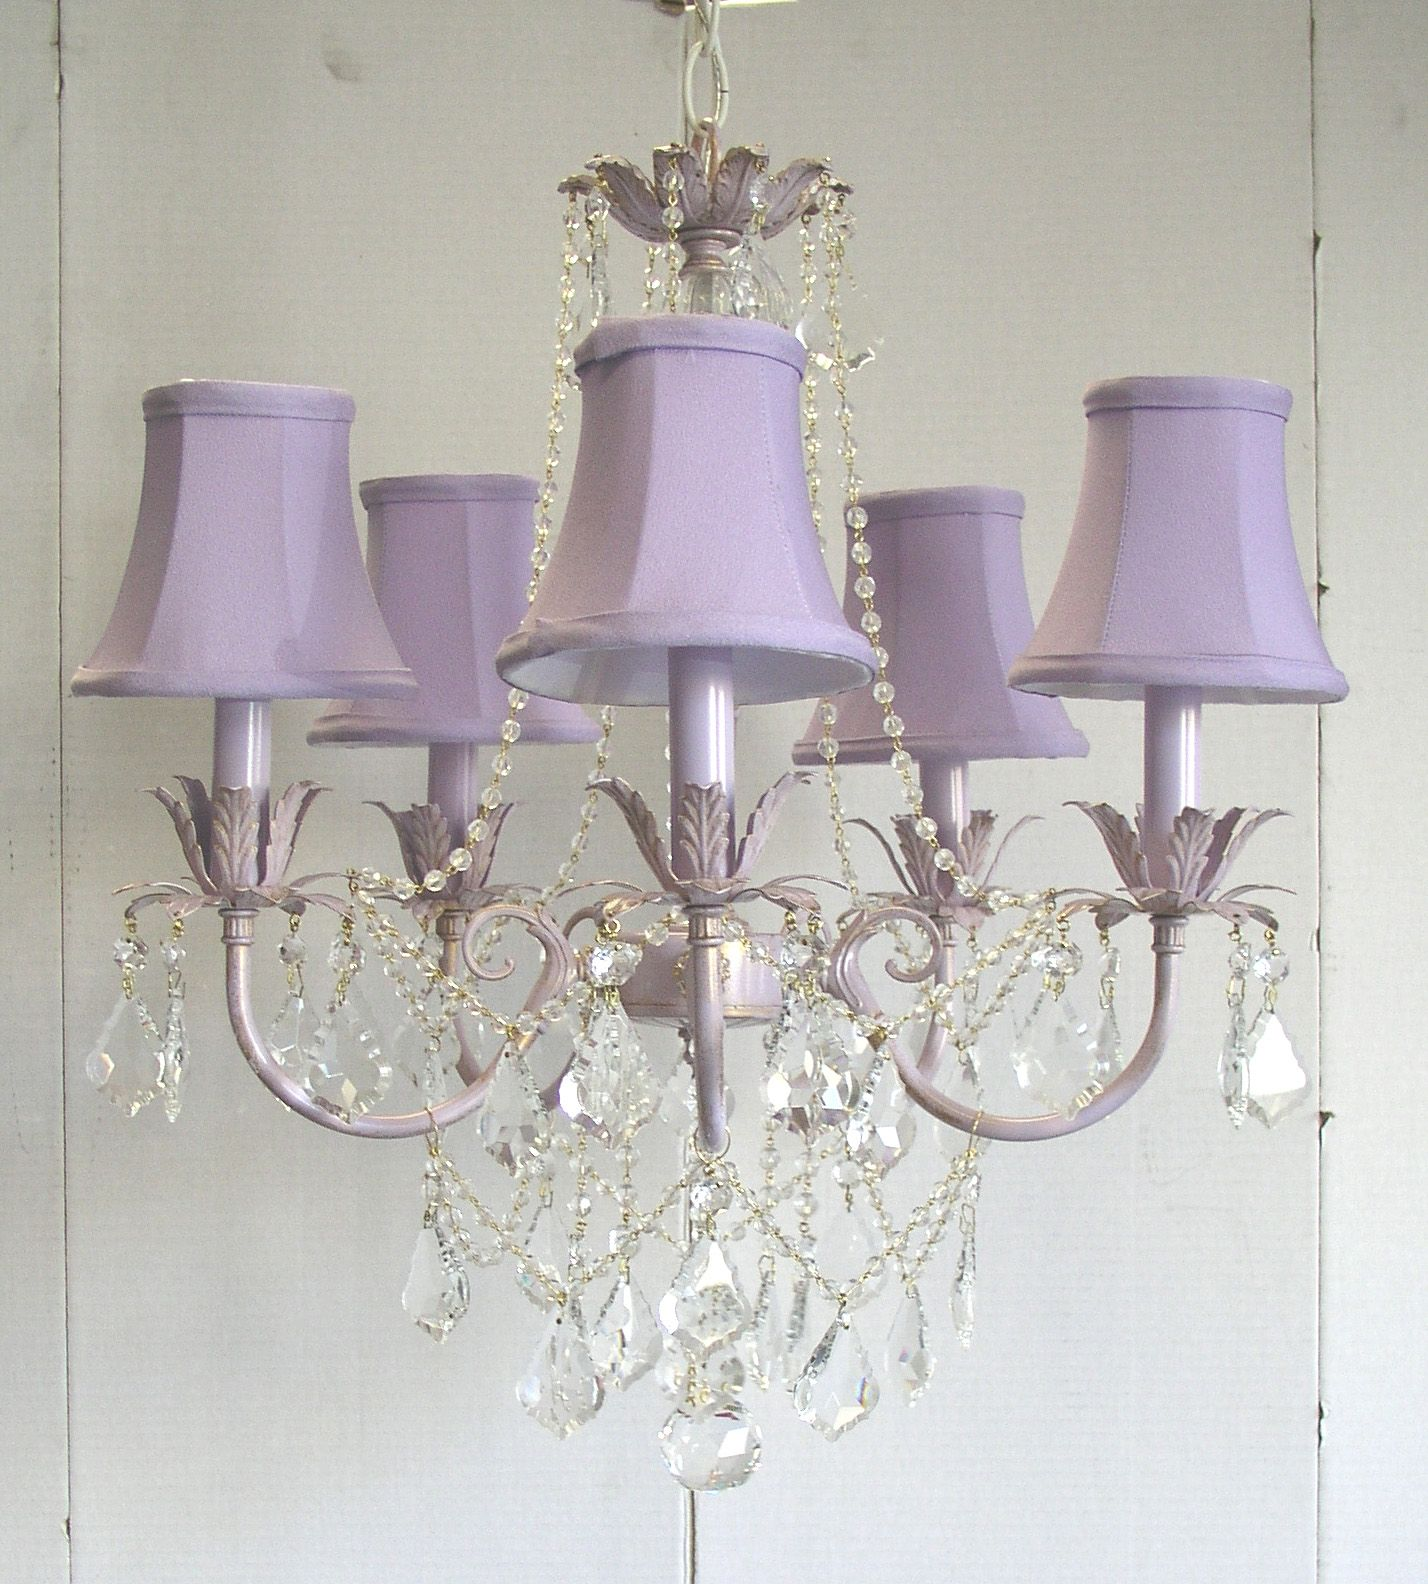 Nursery Chandeliers Chandeliers Design – Chandeliers for Nursery Rooms